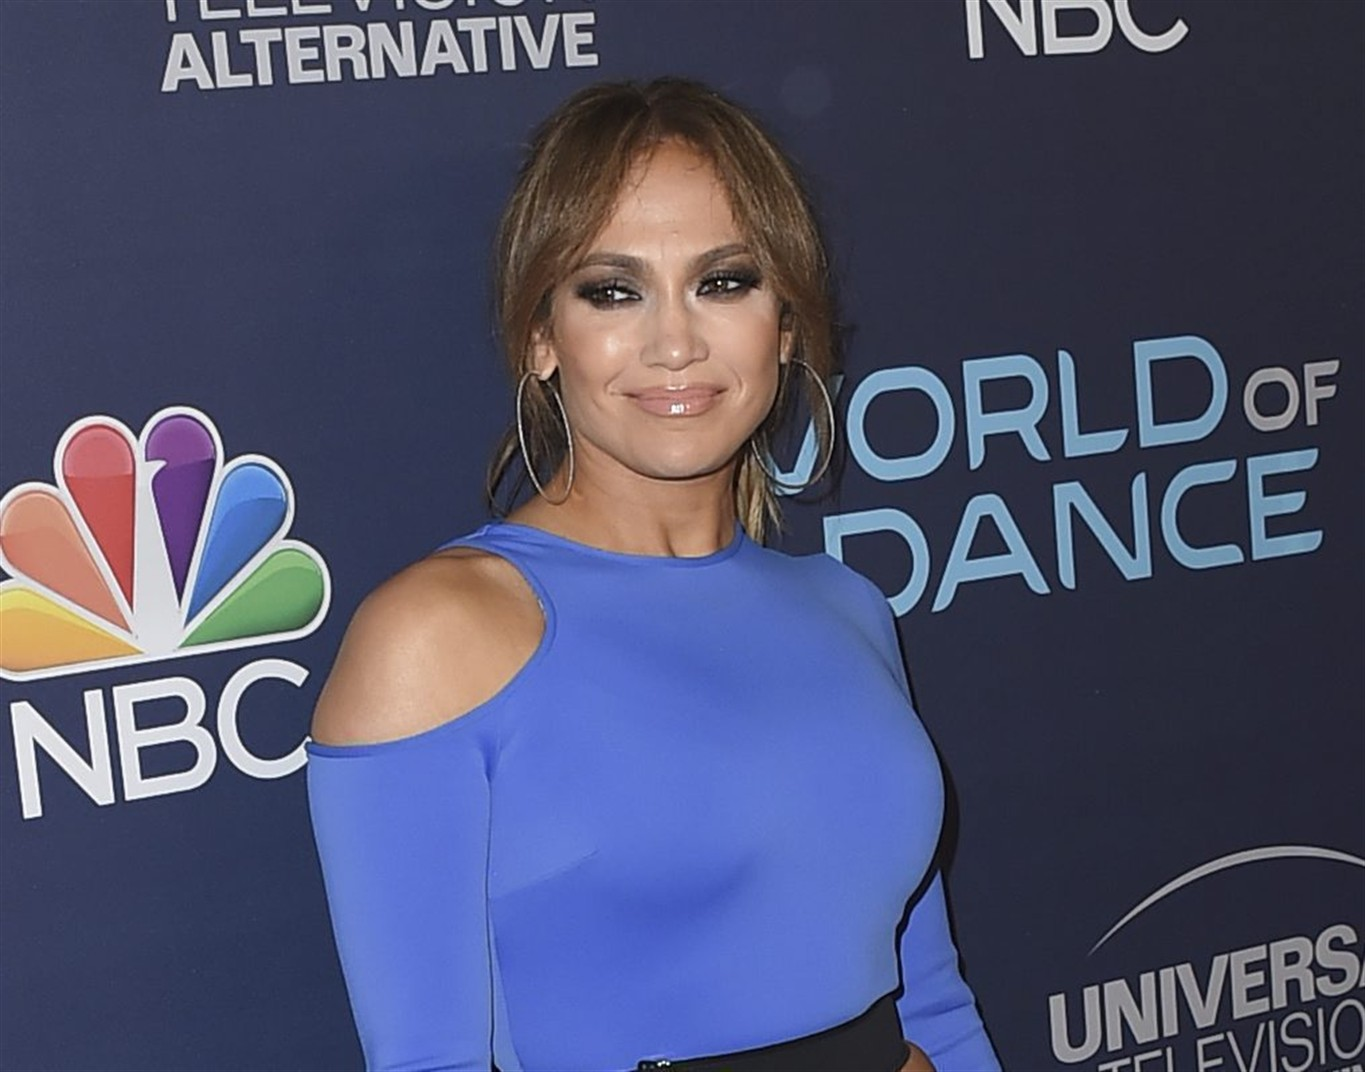 Jennifer Lopez, Other Celebs Raise More Than $35 Million For Hurricane Relief